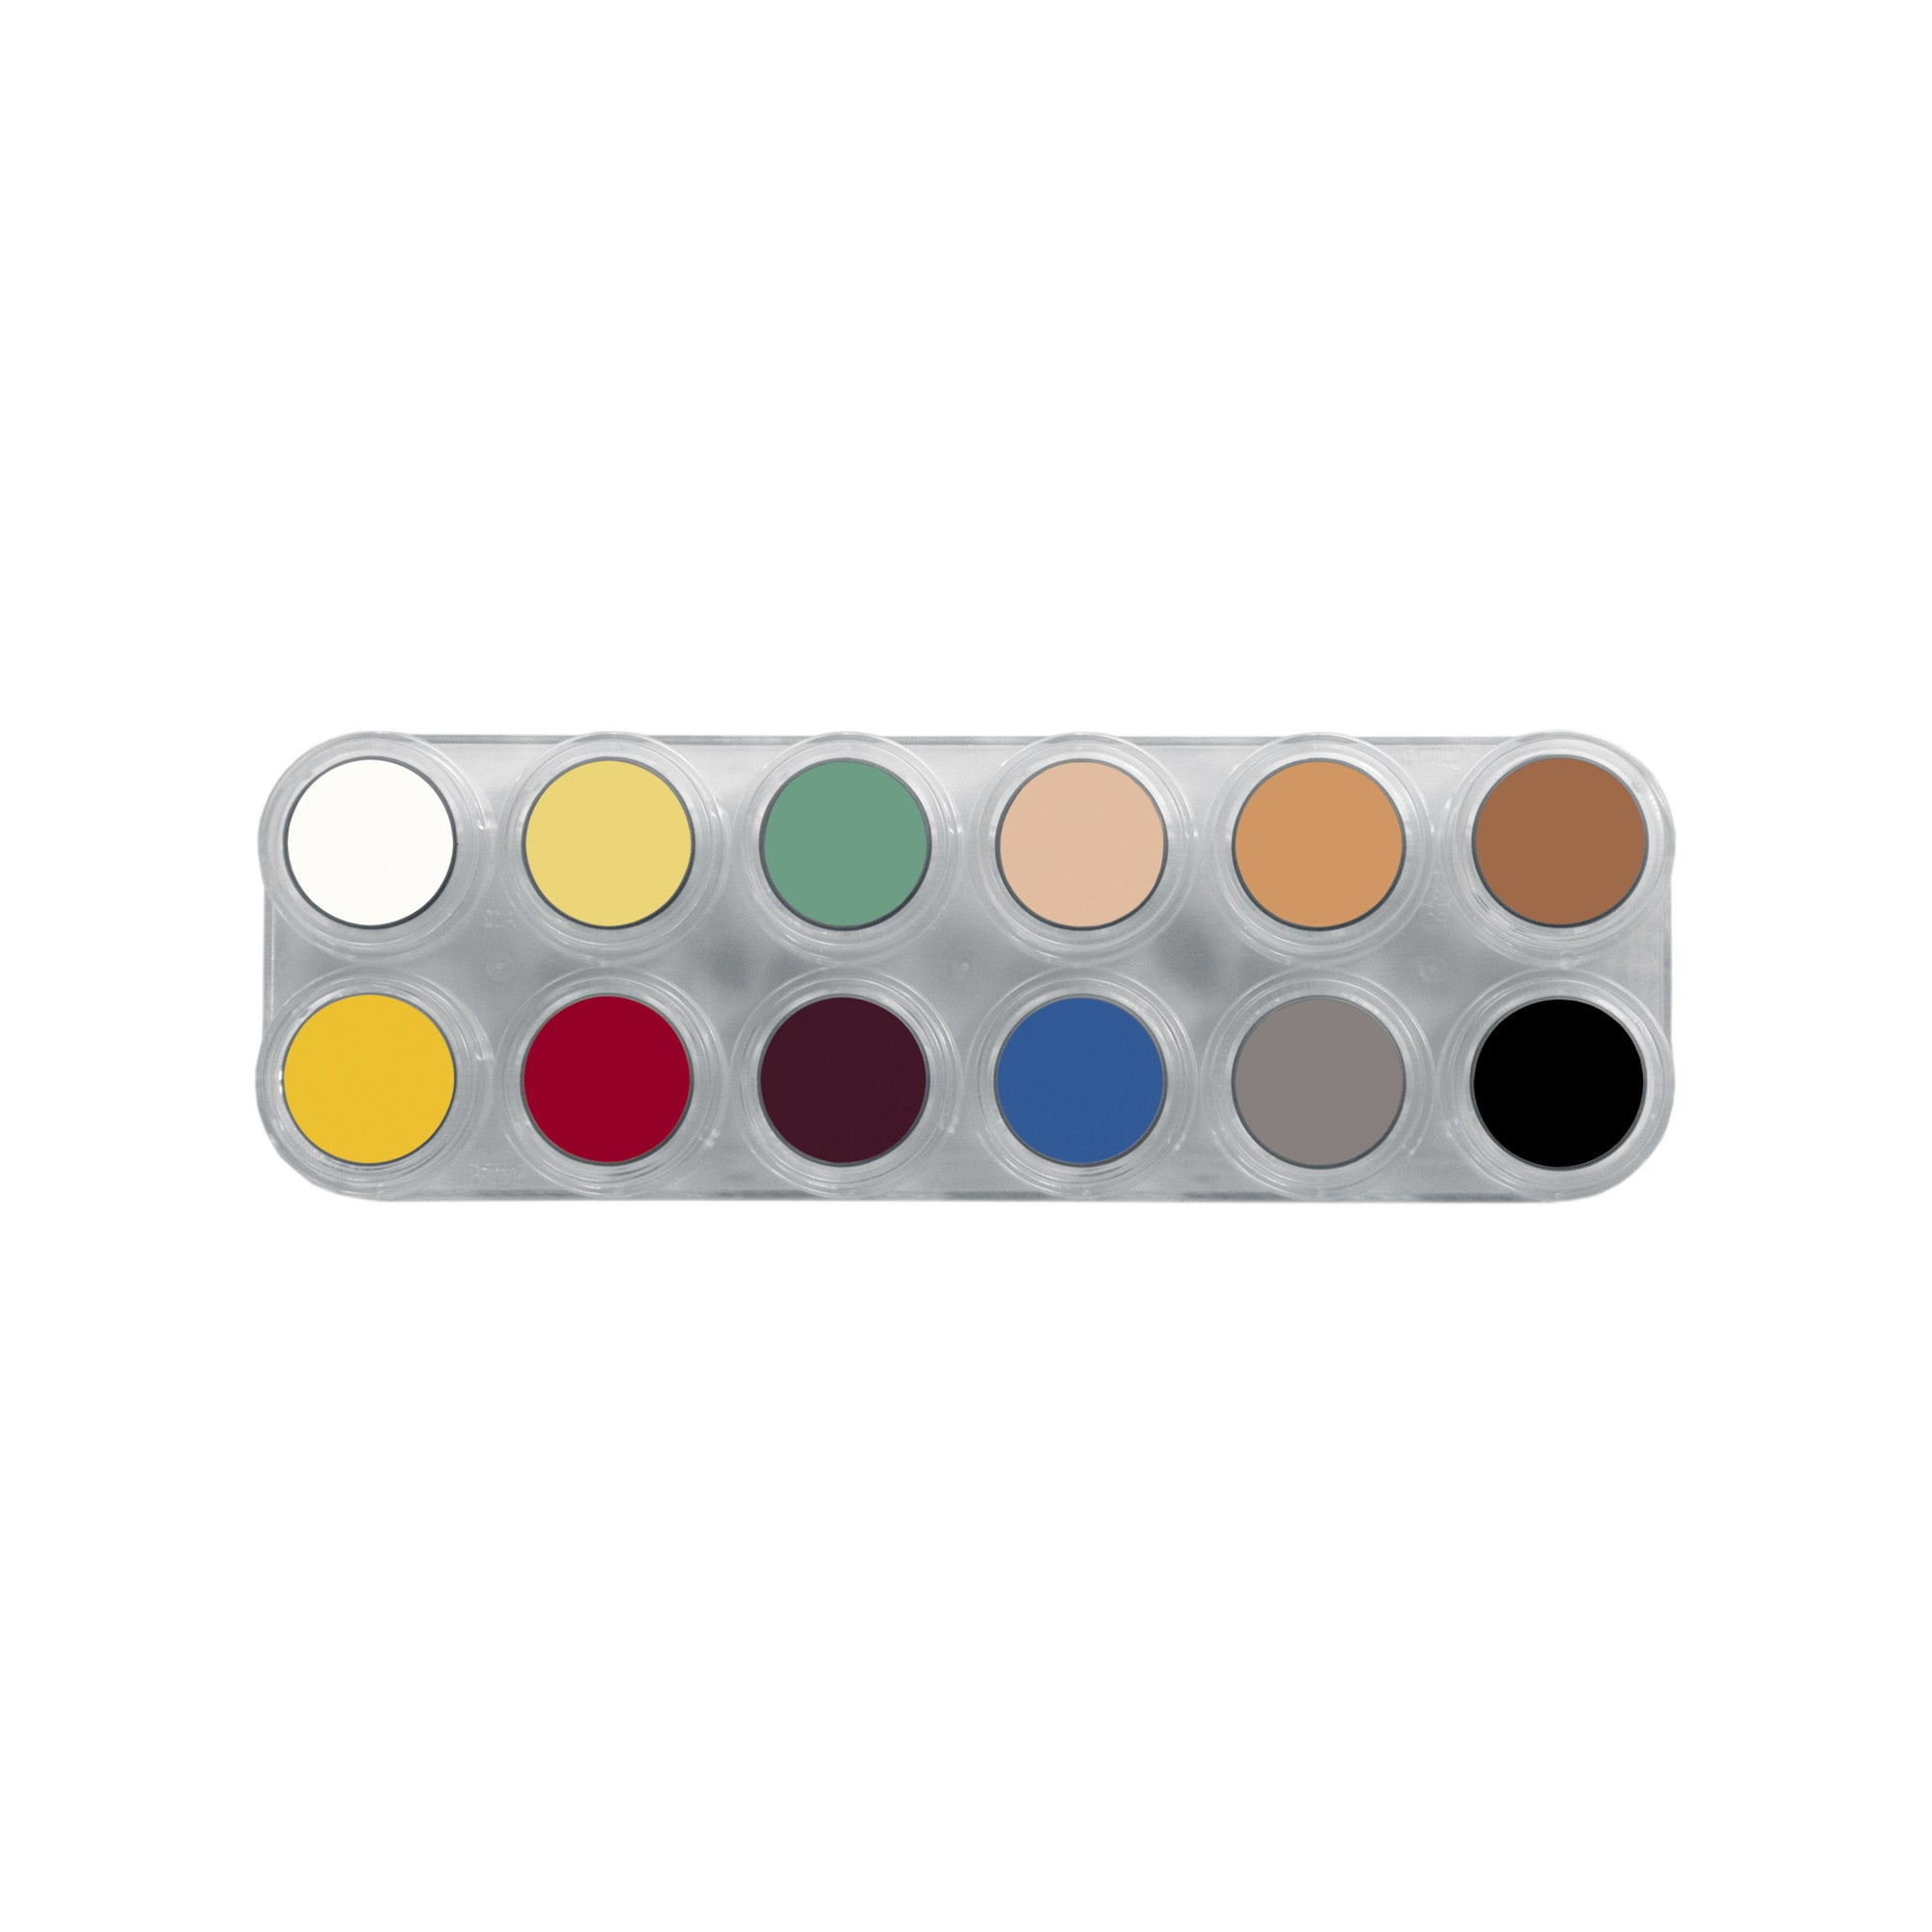 Grimas Pure Crème 12 Colour Face Paint  Palette - L - Red Carpet FX - Professional Makeup